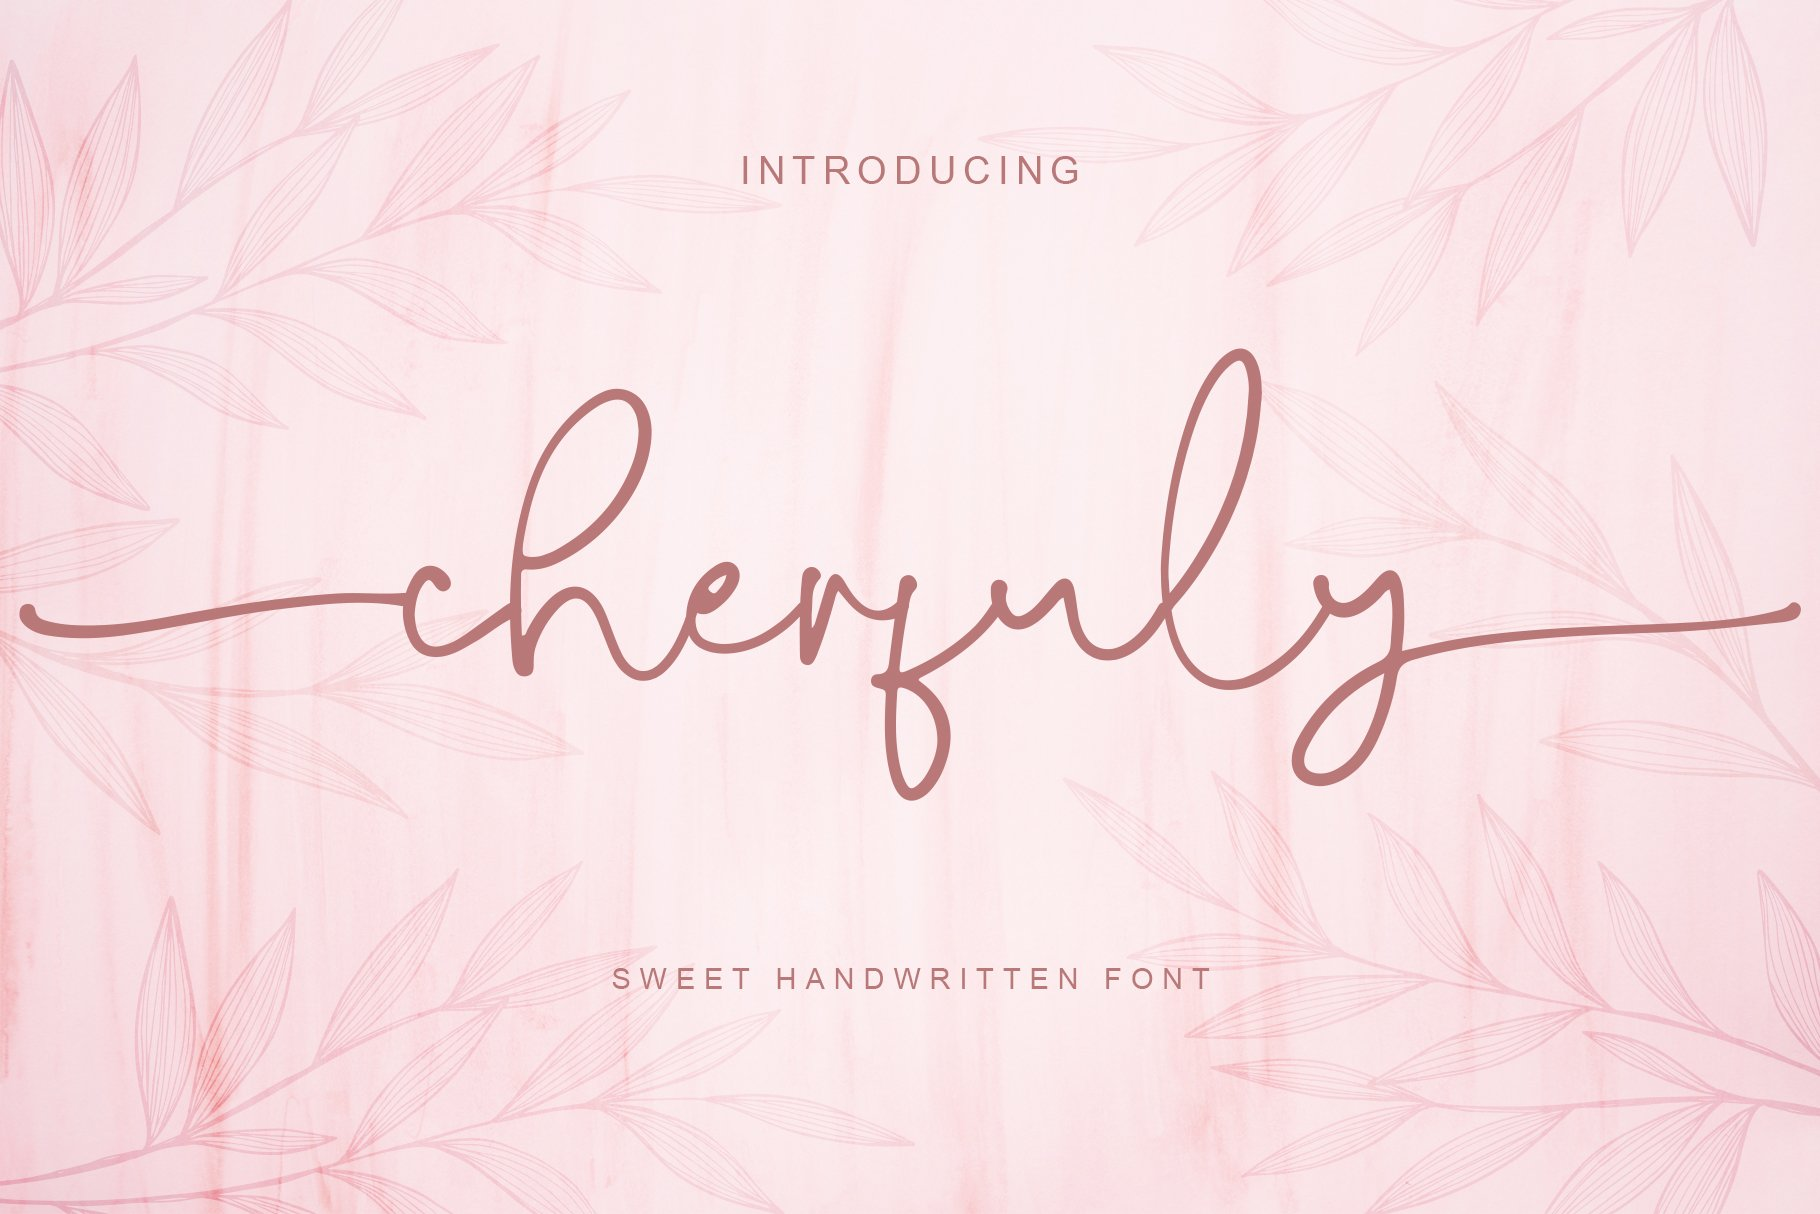 Cherfuly example image 1